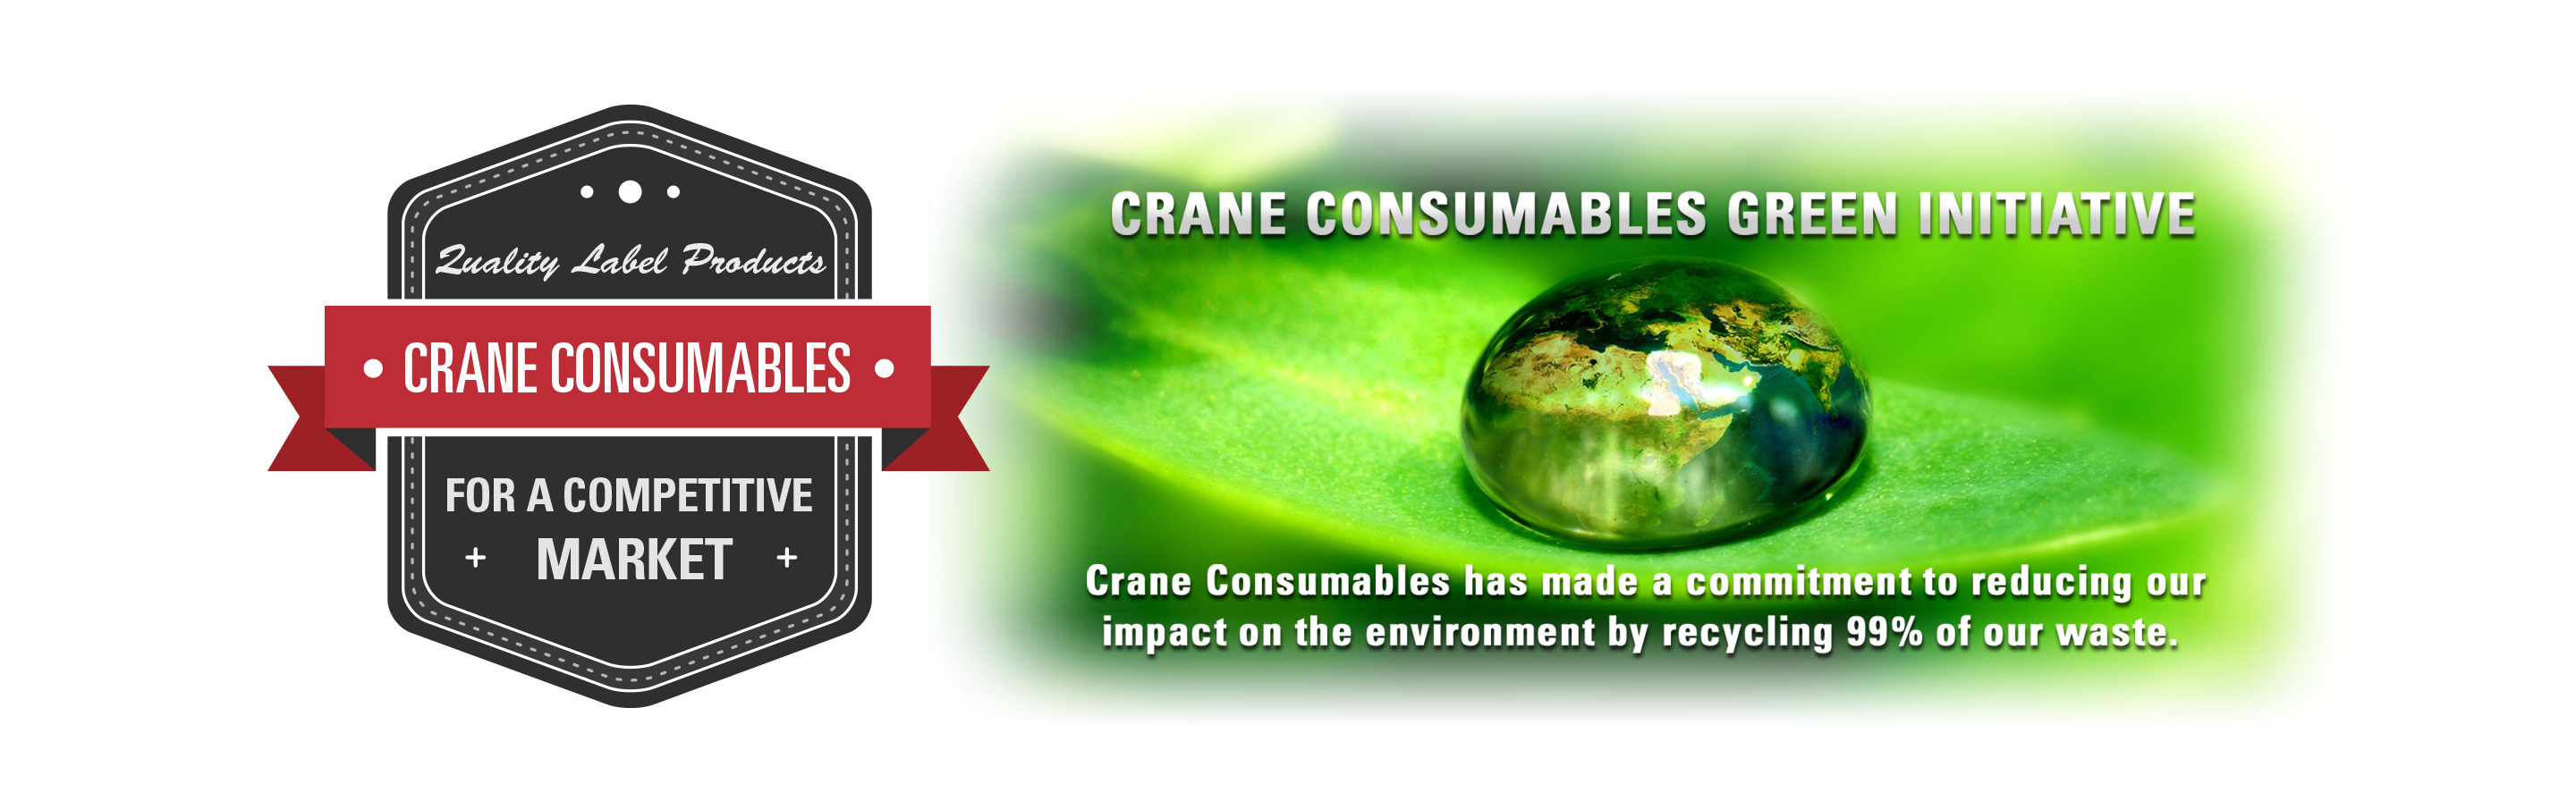 FD102483---Crane-Consumables_Banners-Green